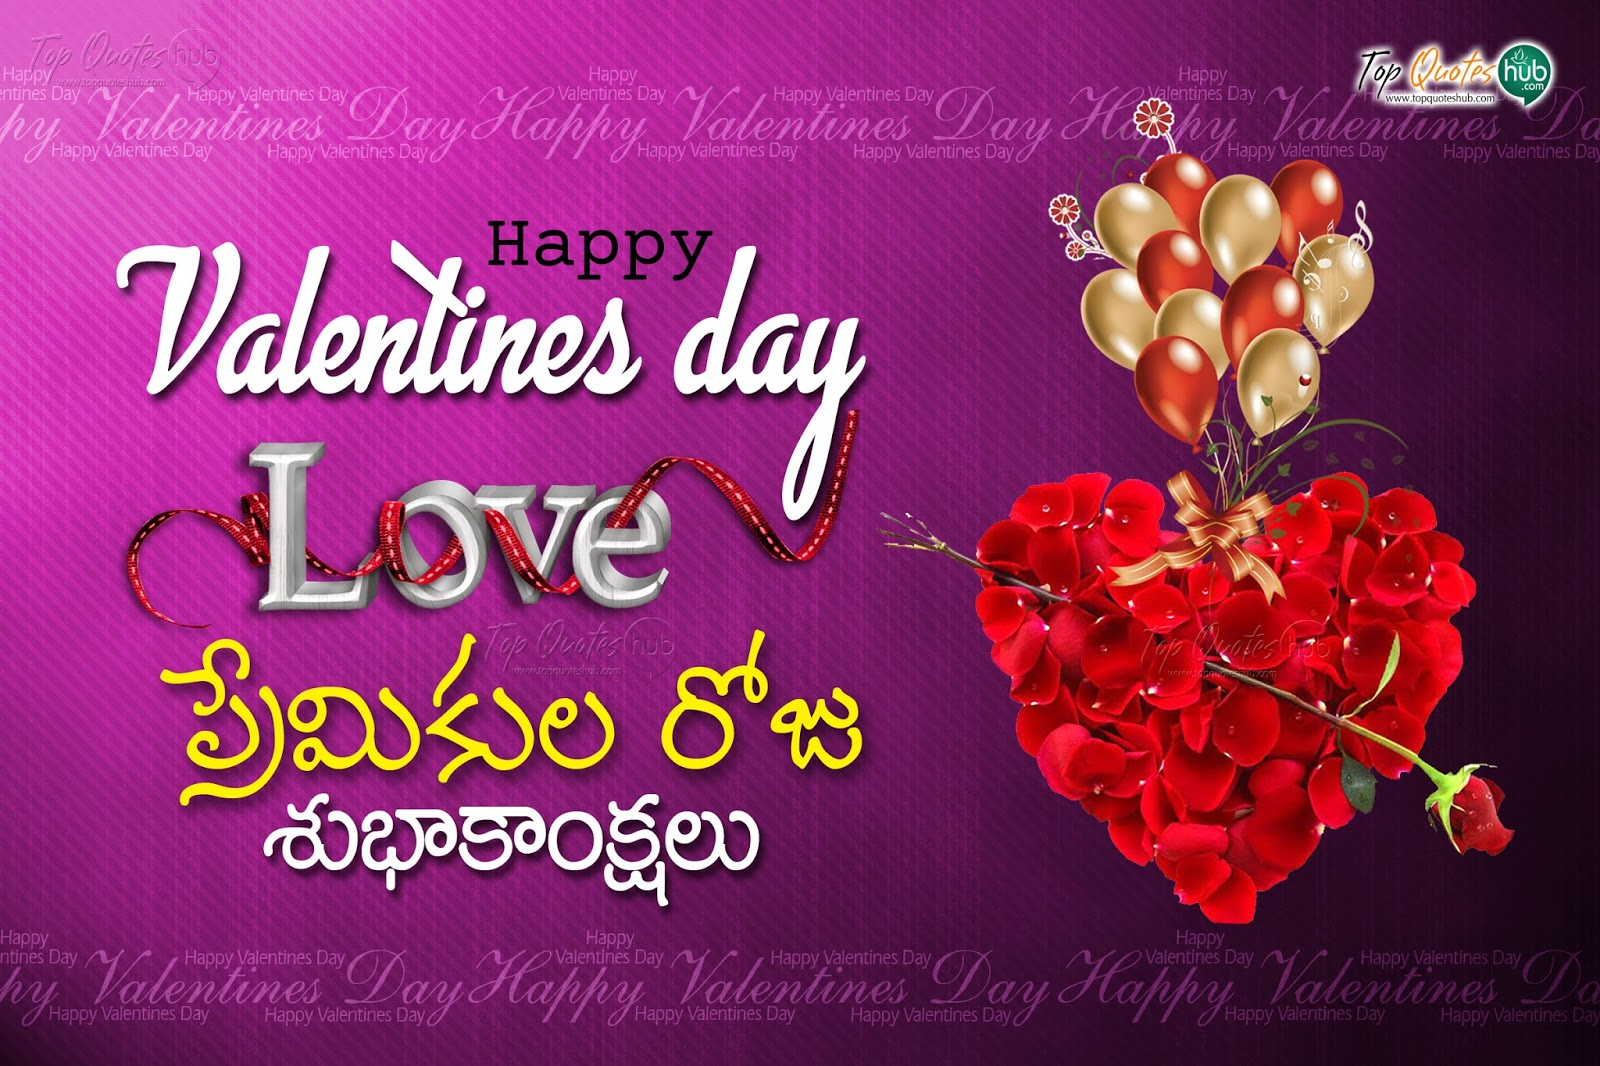 Valentines Day Quotations In Telugu The Christmas Tree